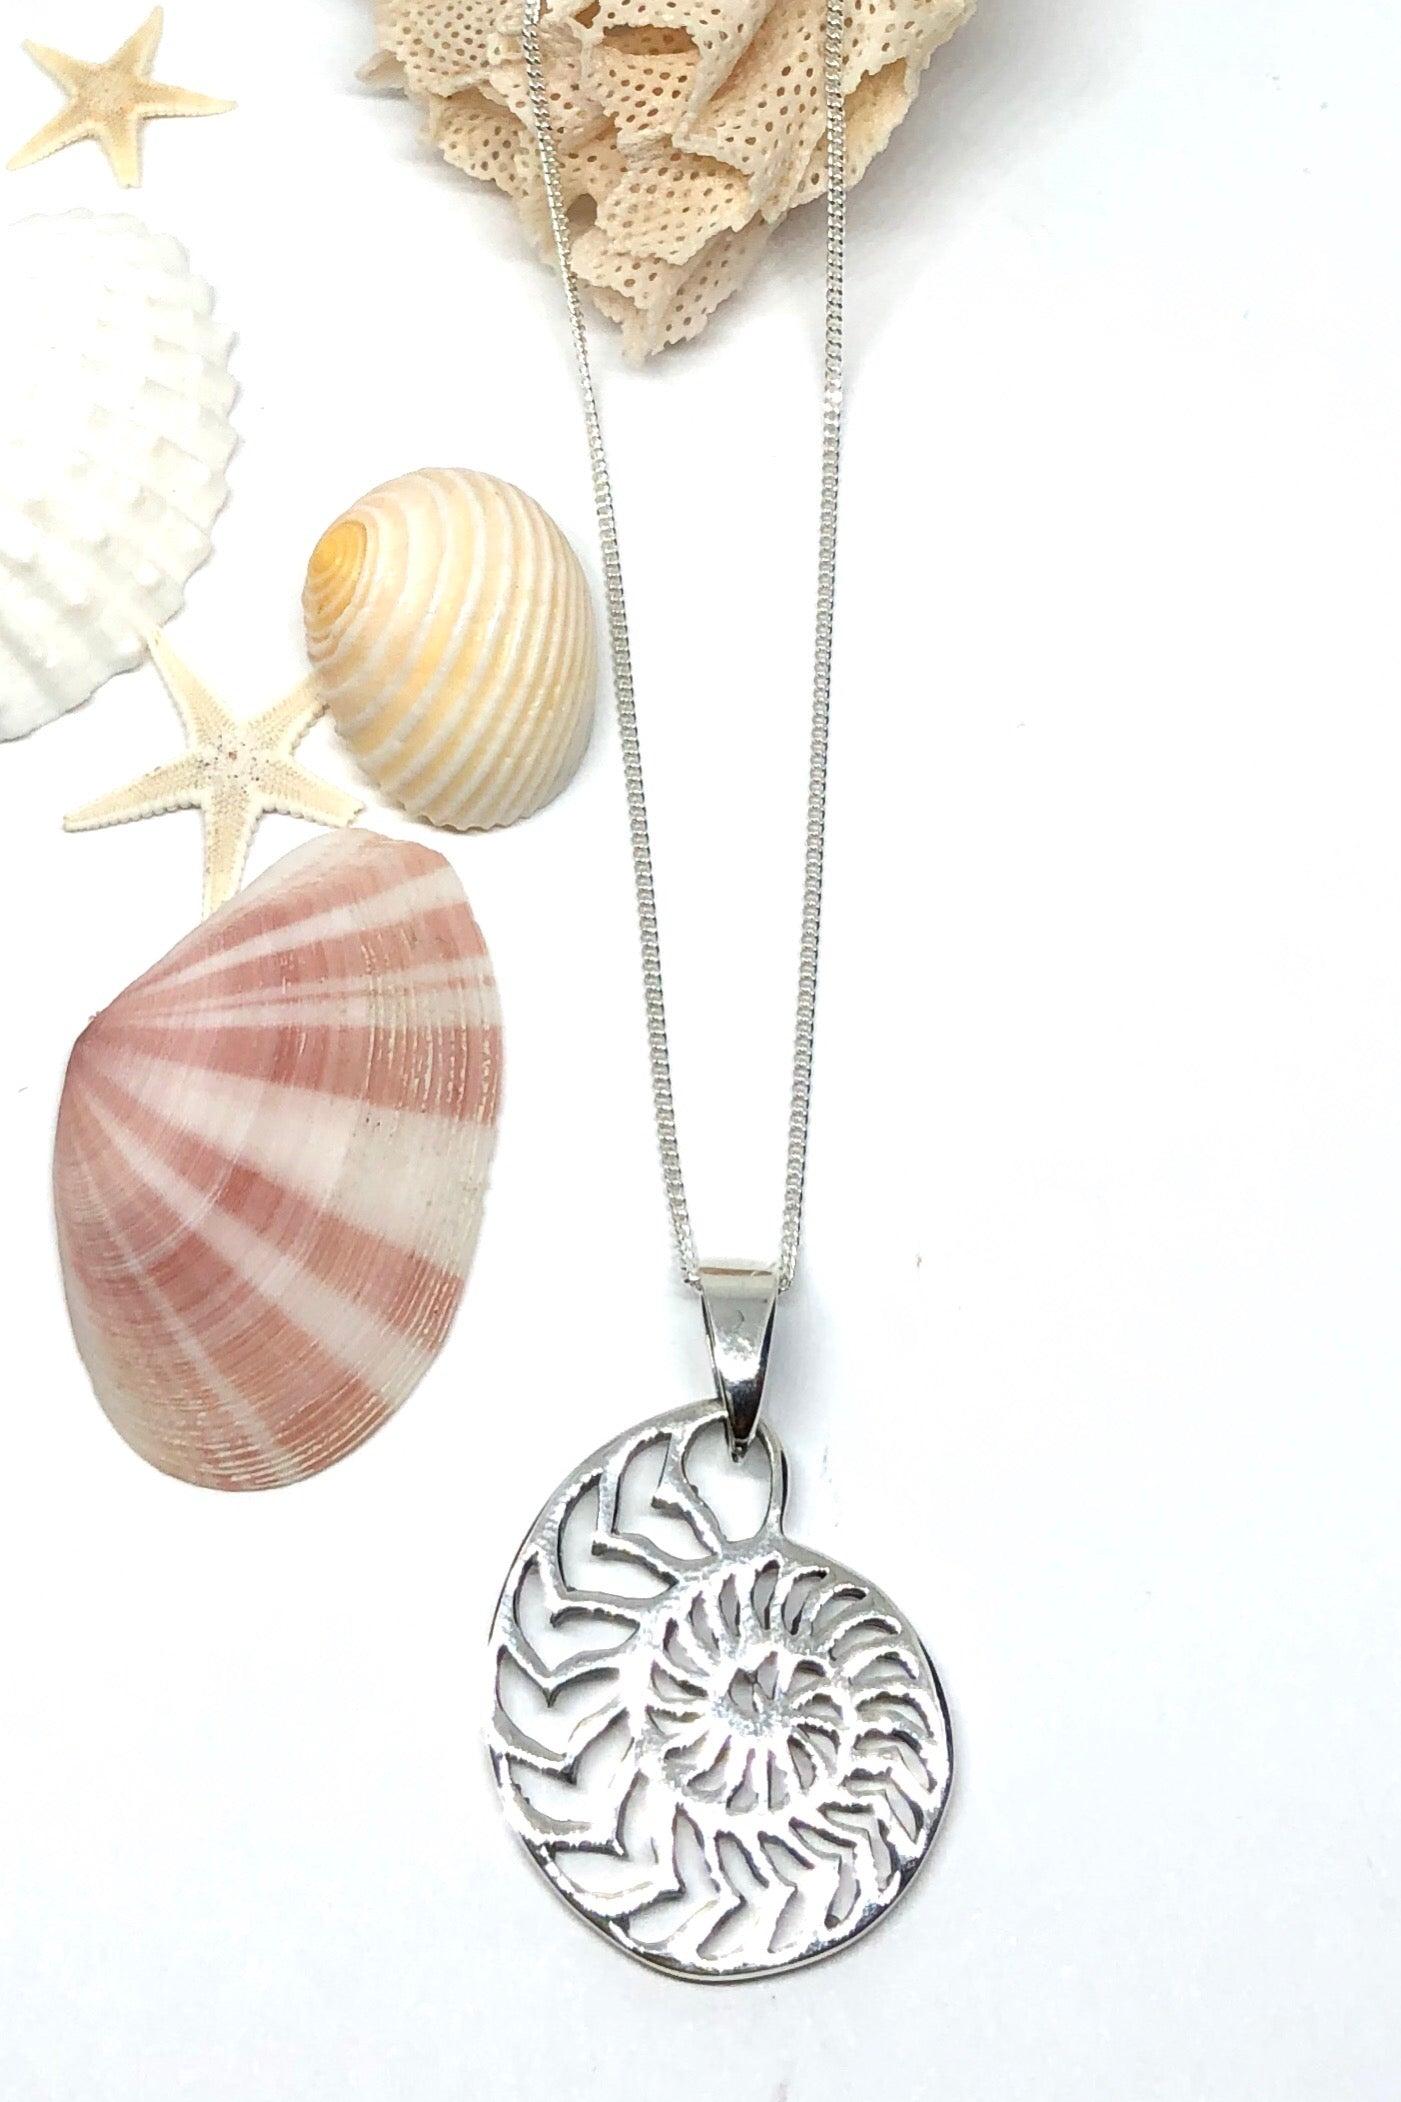 A swirl of the gorgeous nautilus shell shape, this silver pendant is the ocean necklace of dreams